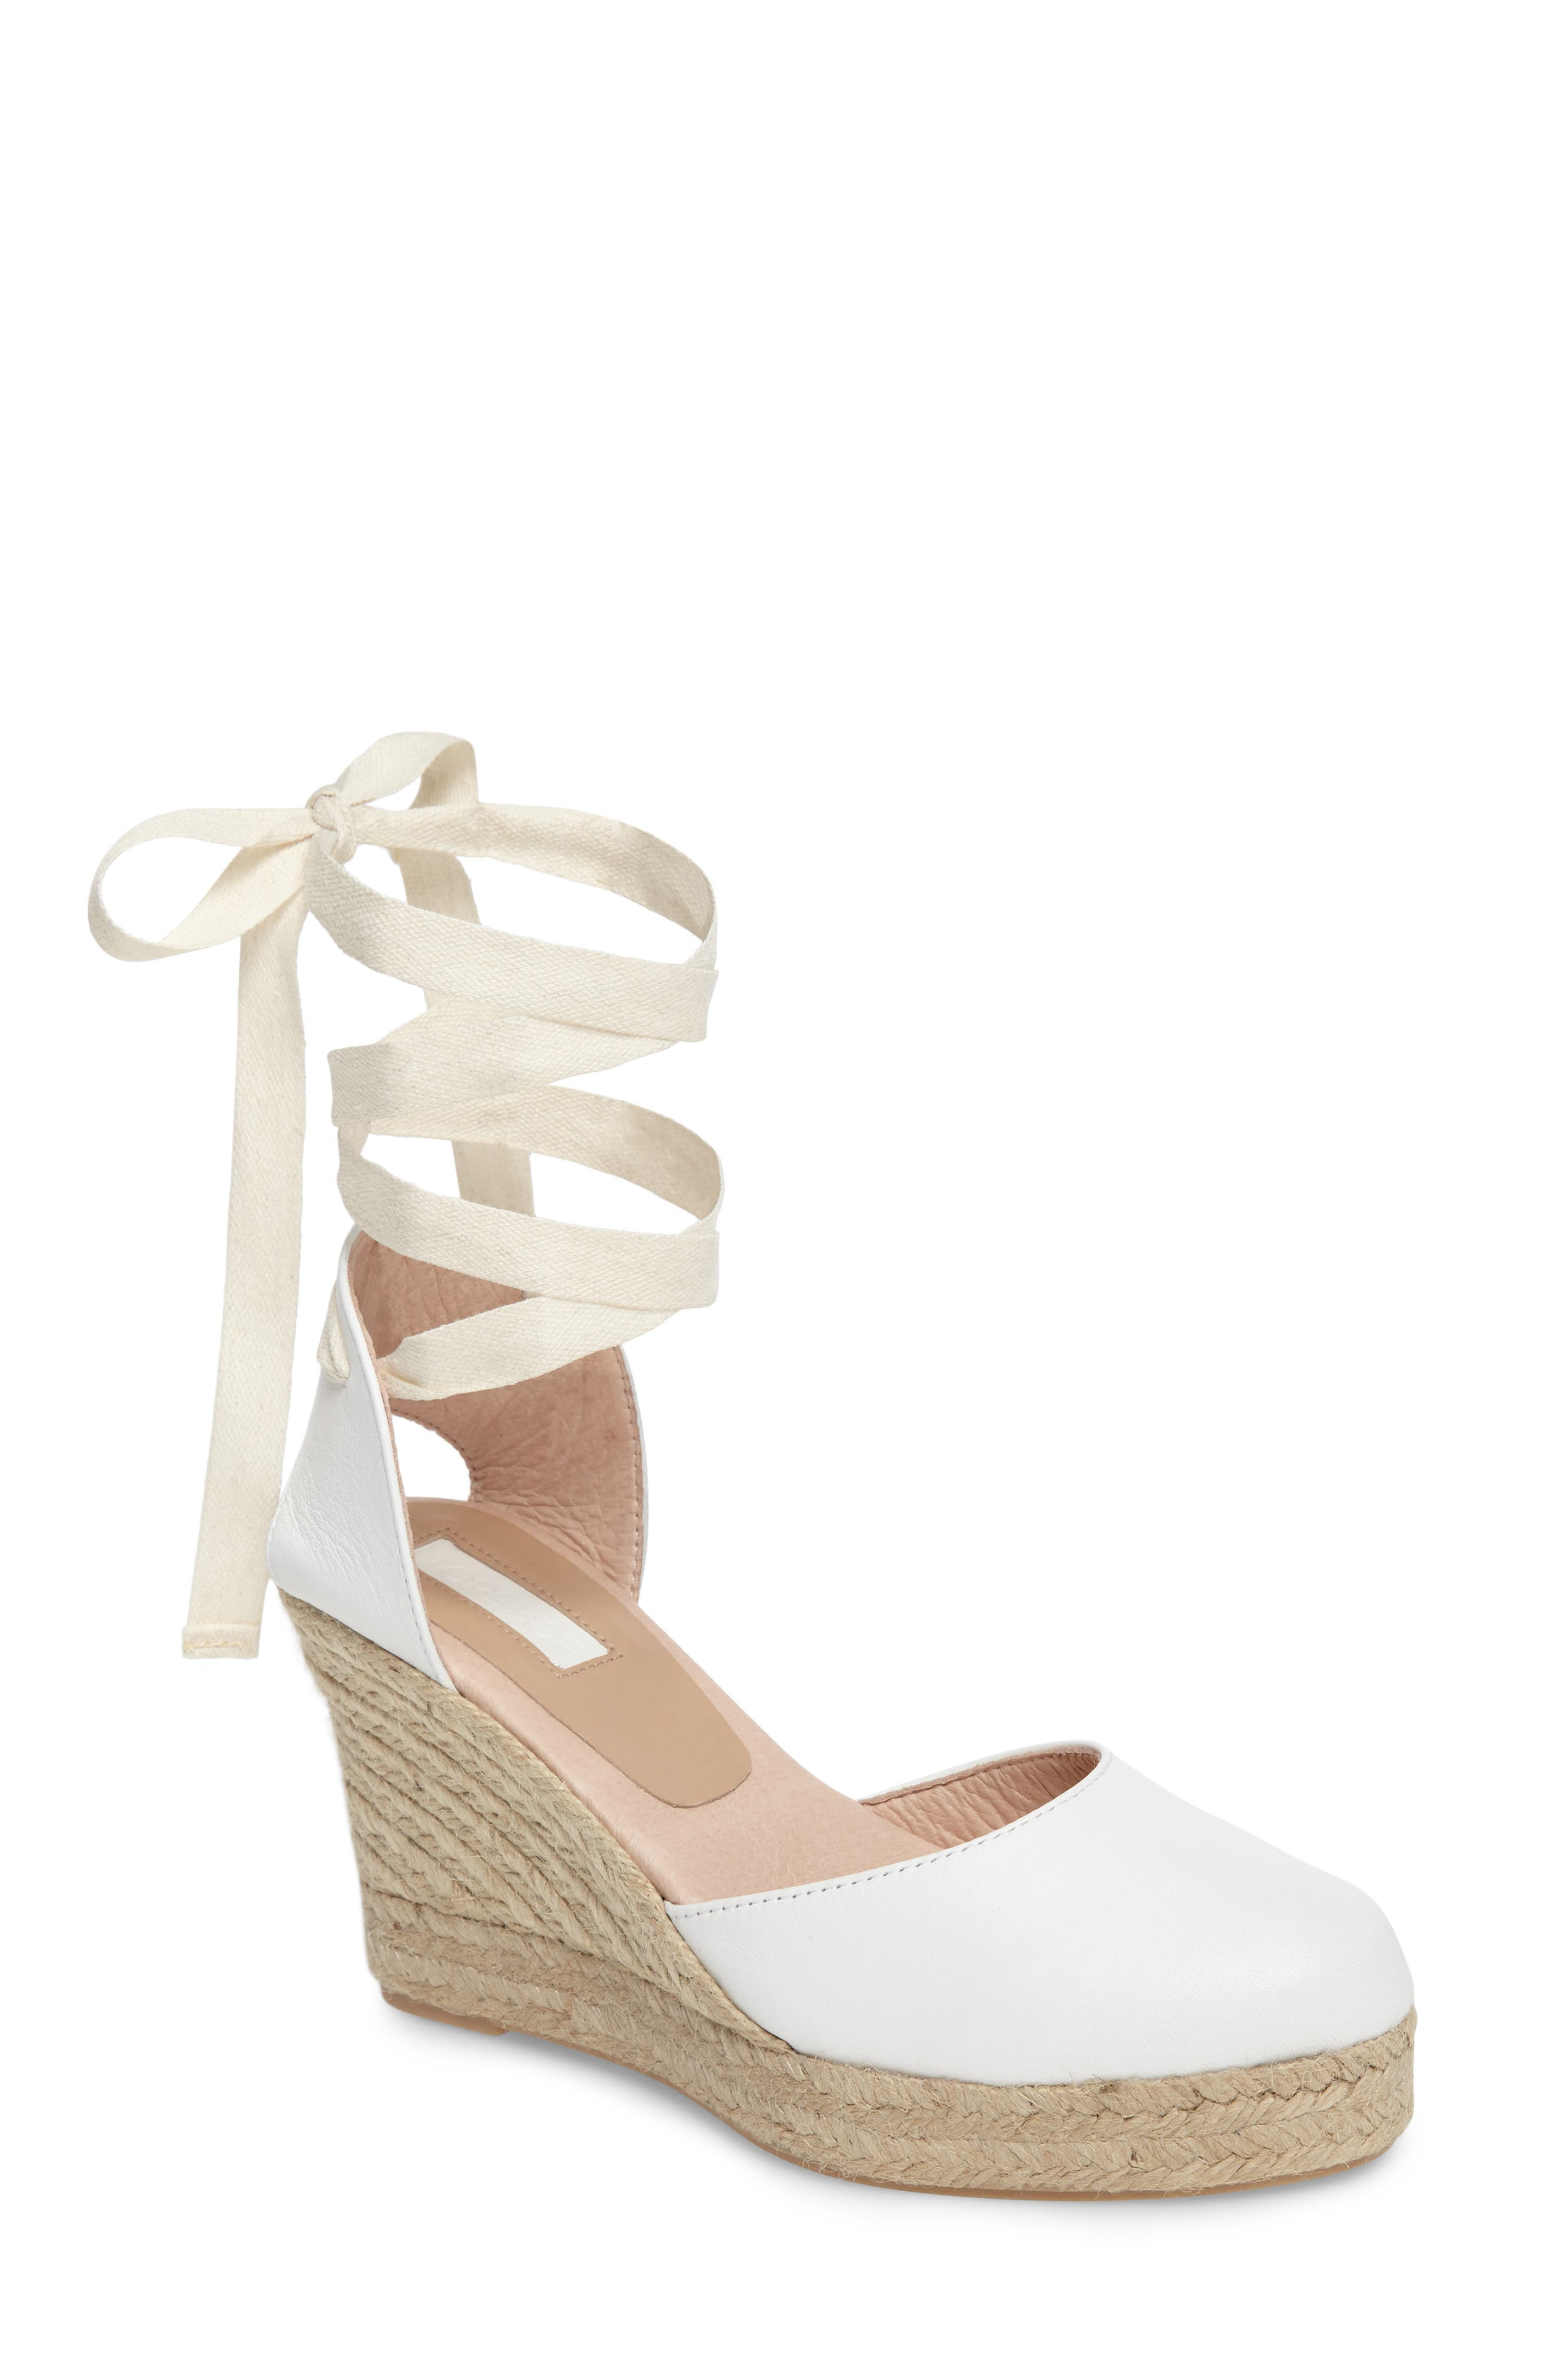 Warmth Espadrille Wedge,                         Main,                         color, 100